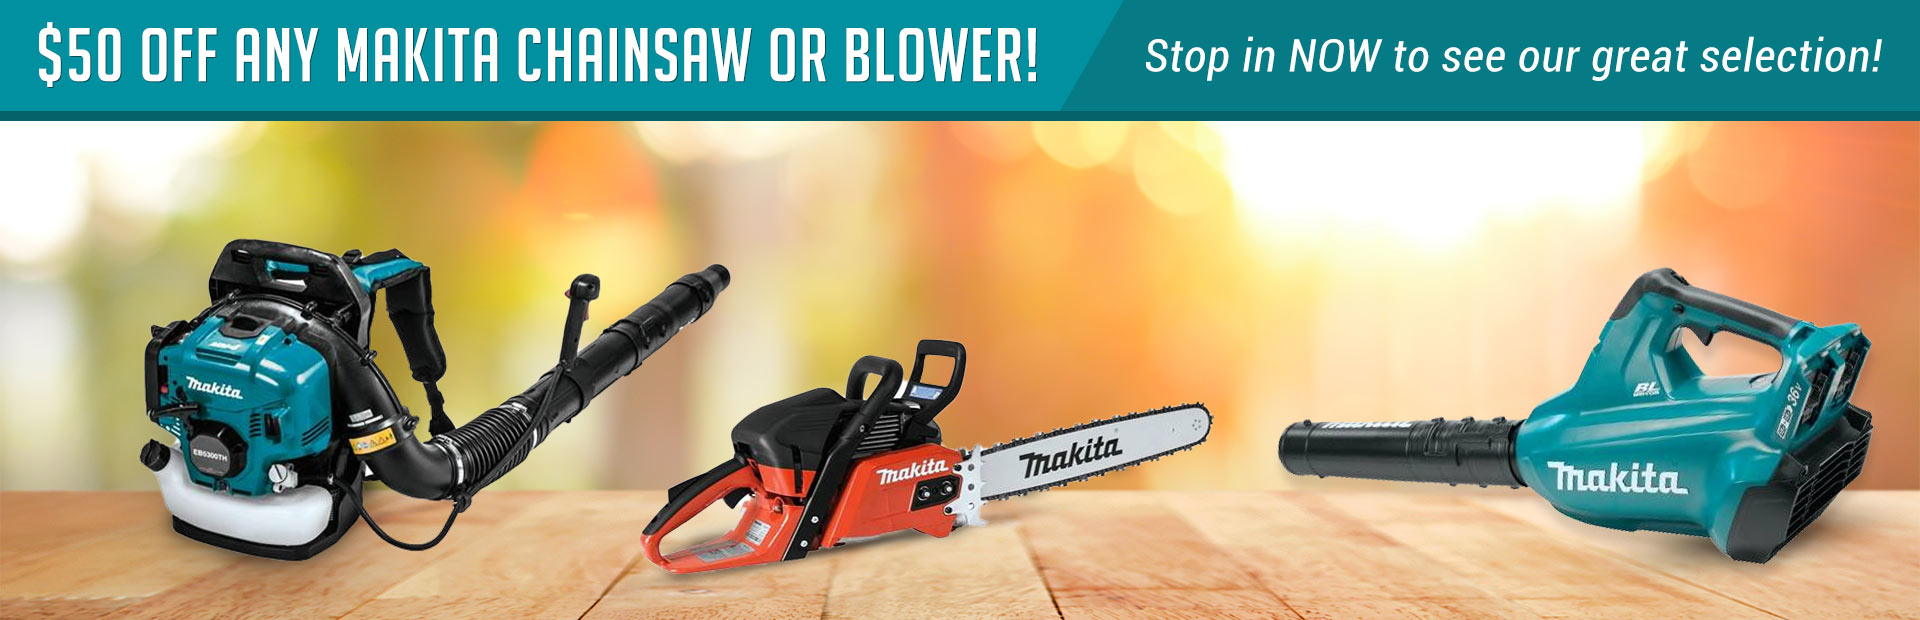 Get $50 off any Makita chainsaw or blower! Stop in now to see our great selection!